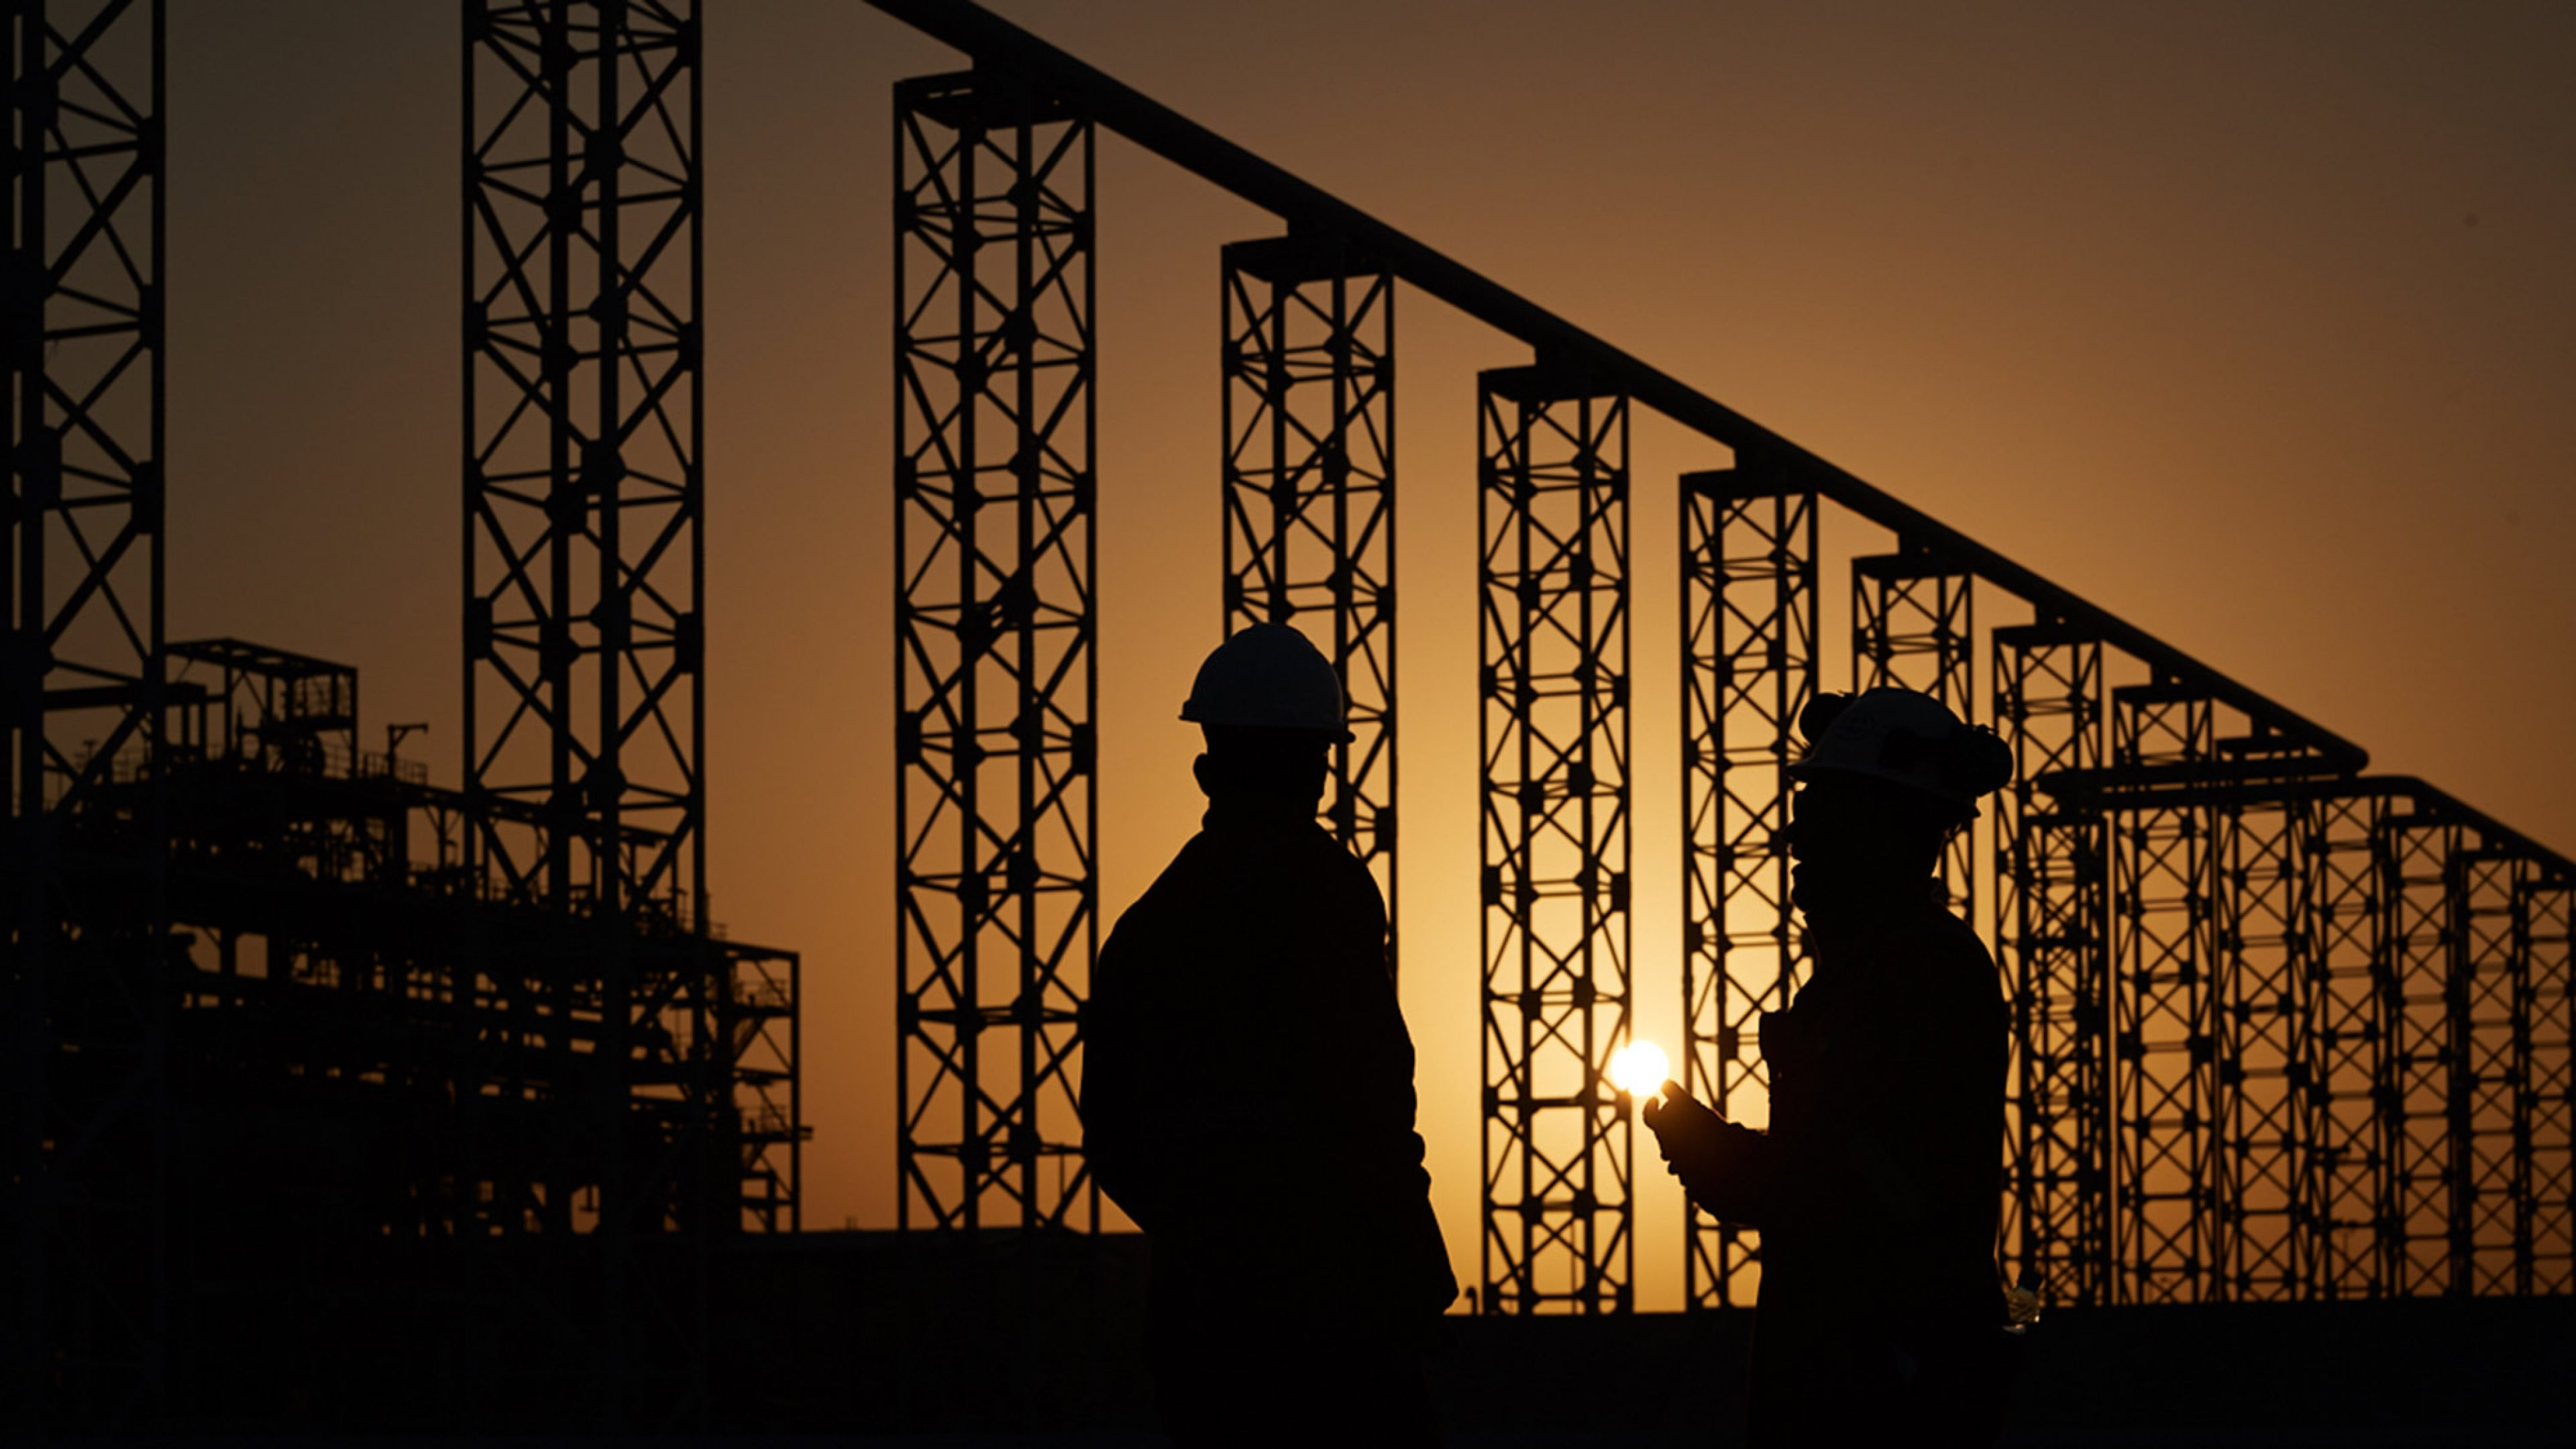 BPs Khazzan project with two workers in silhouette at sunset